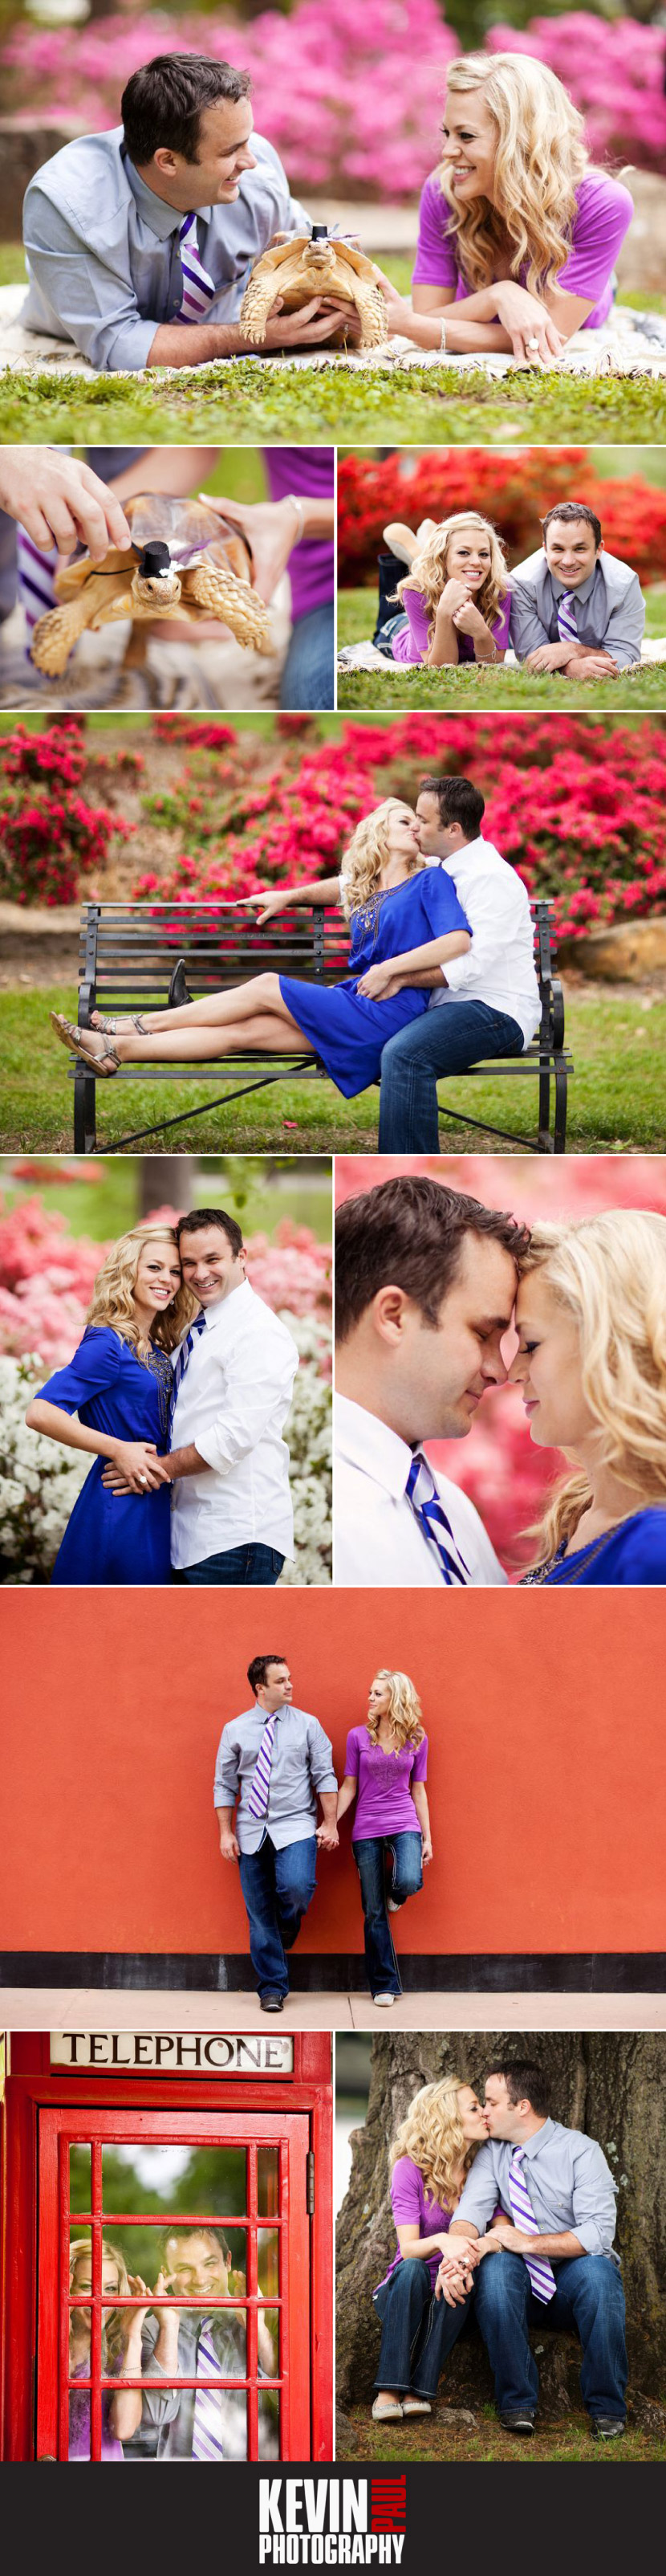 Kevin Paul Engagement Session